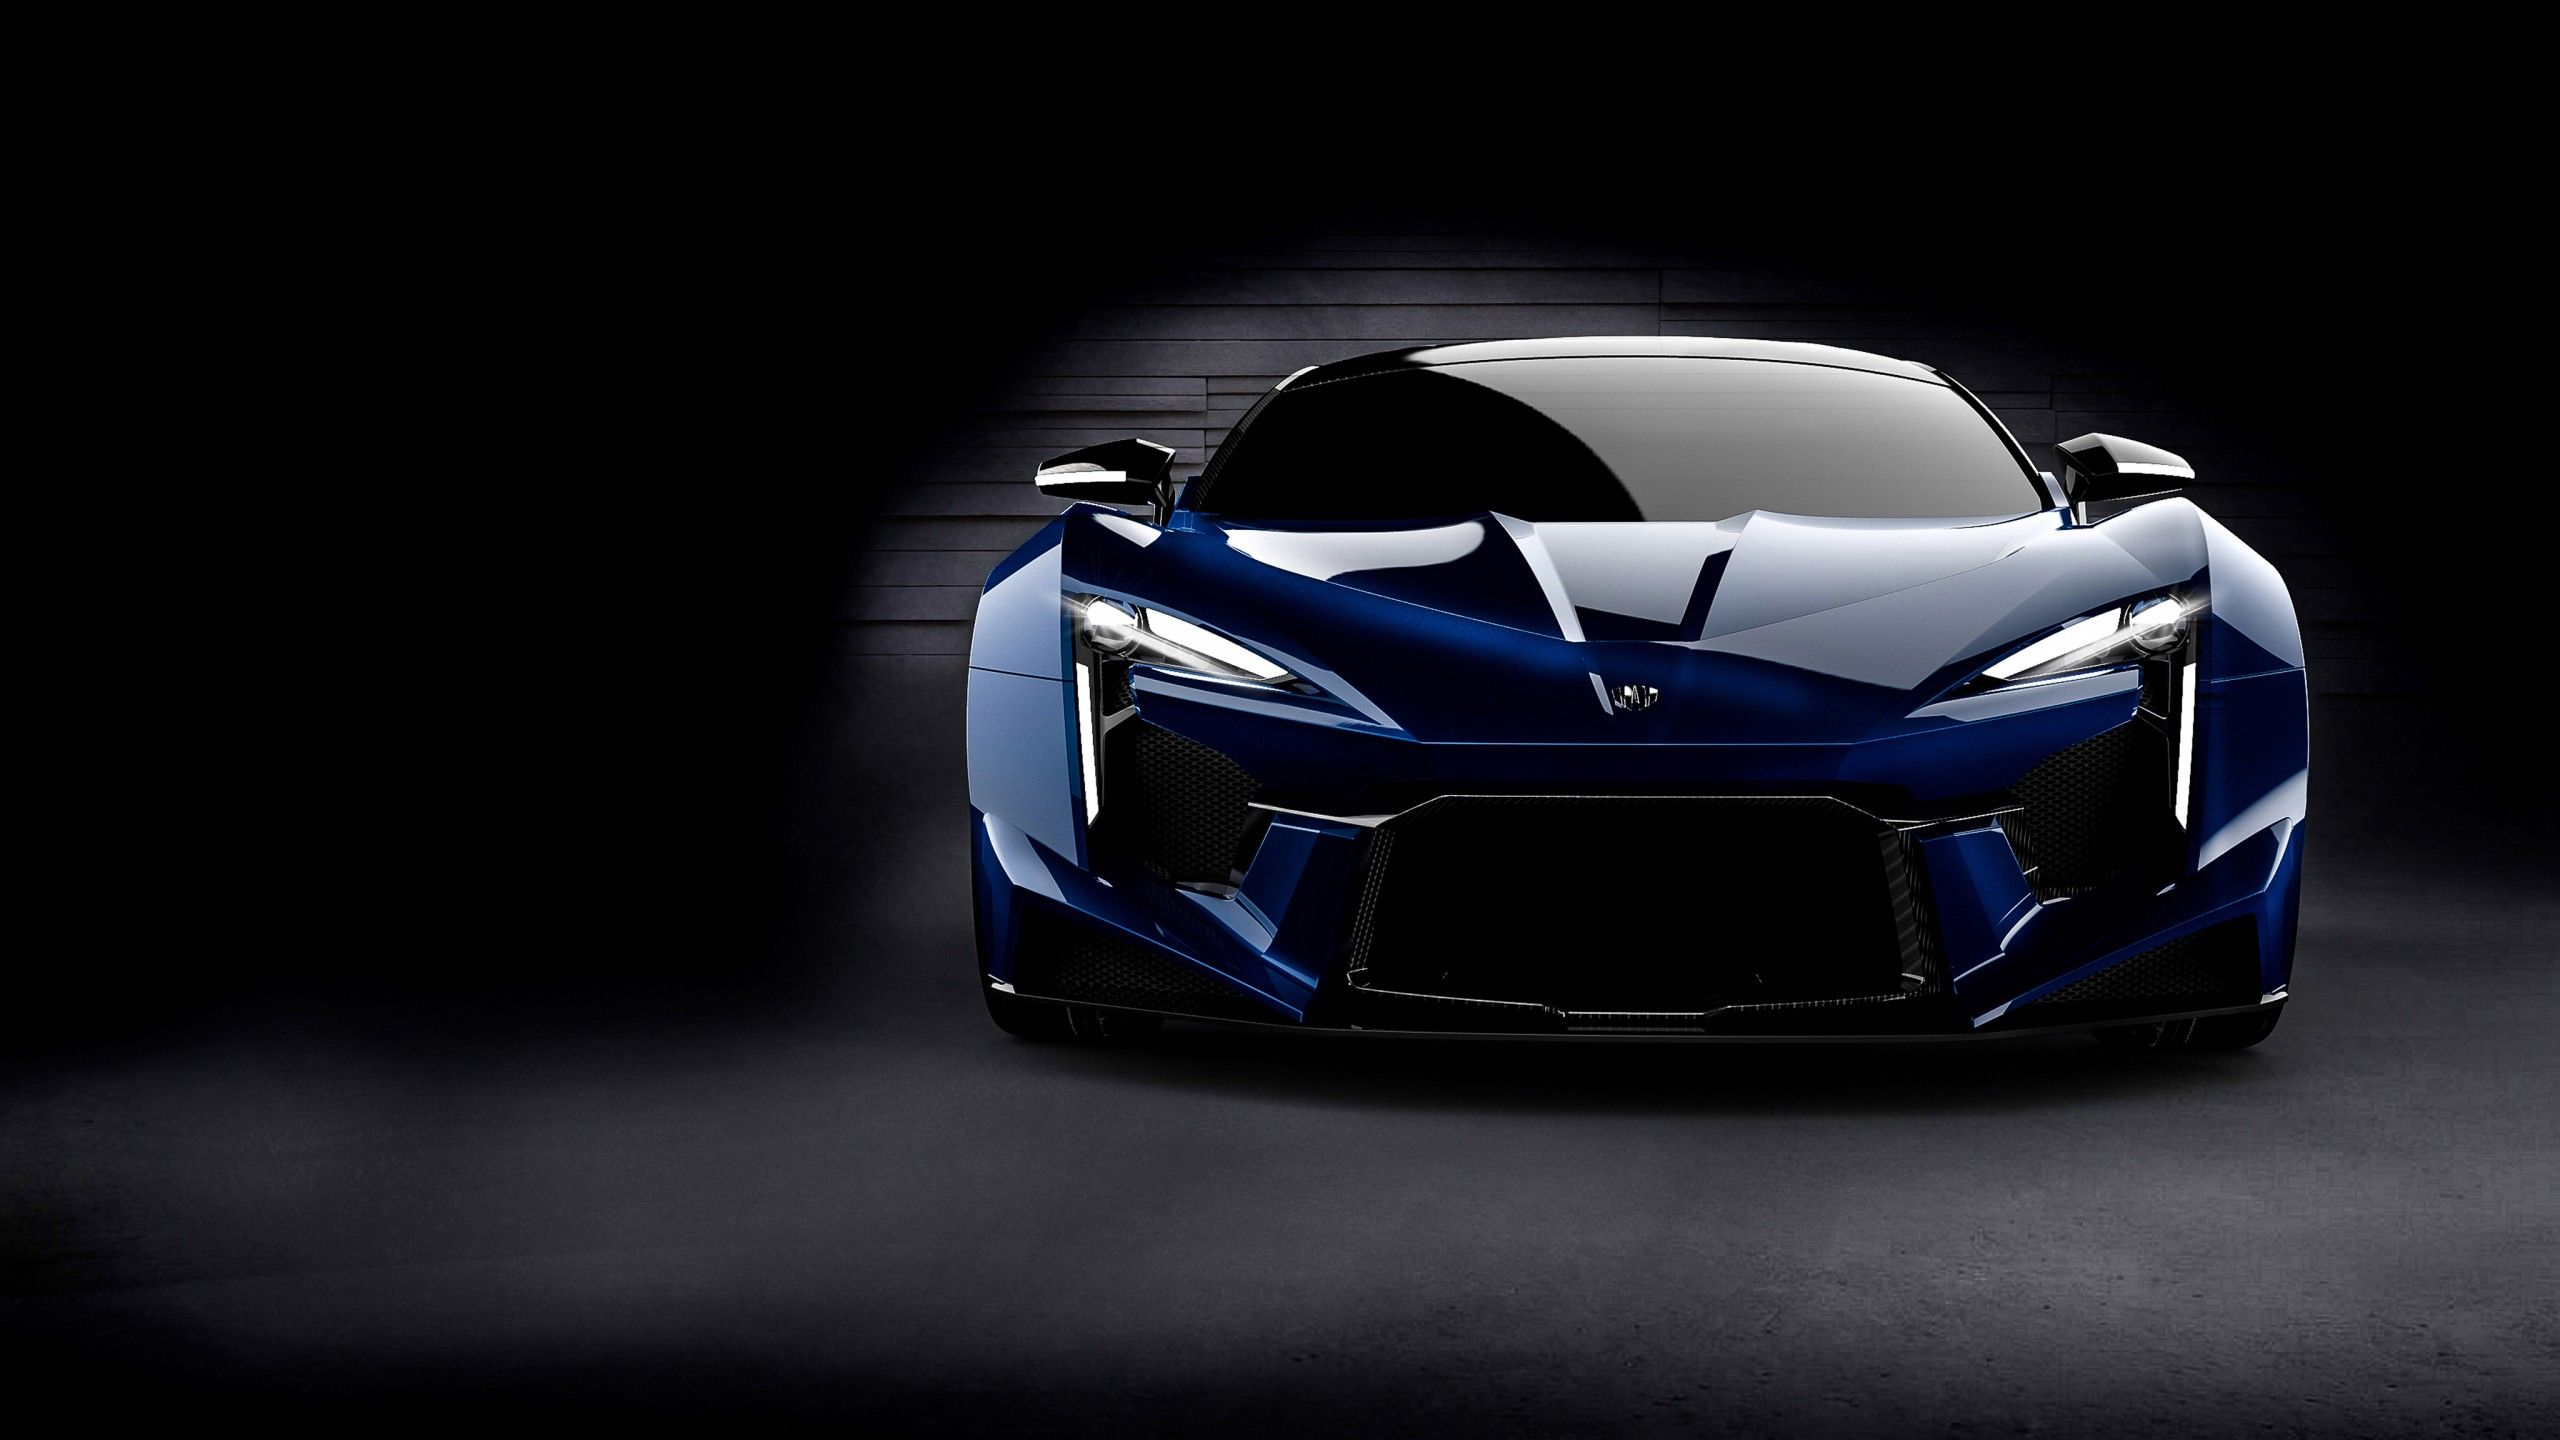 Wallpapers Full Hd 4k Para Pc 109308 Cool Sports Cars Super